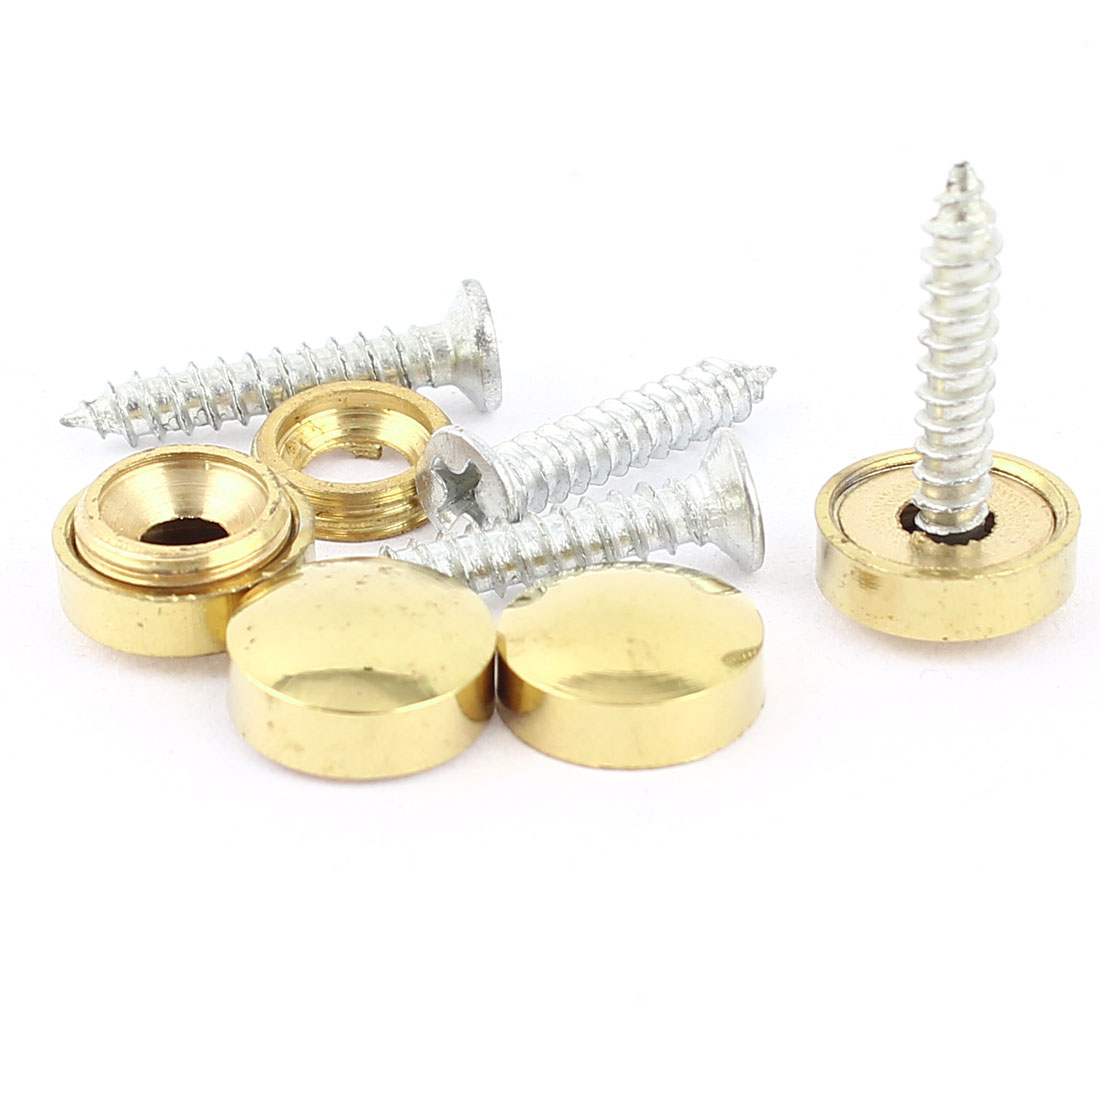 4 Pcs Fitting Parts Brass Tone 12mm Diameter Screw Cap Mirror Nails Decoration Lid